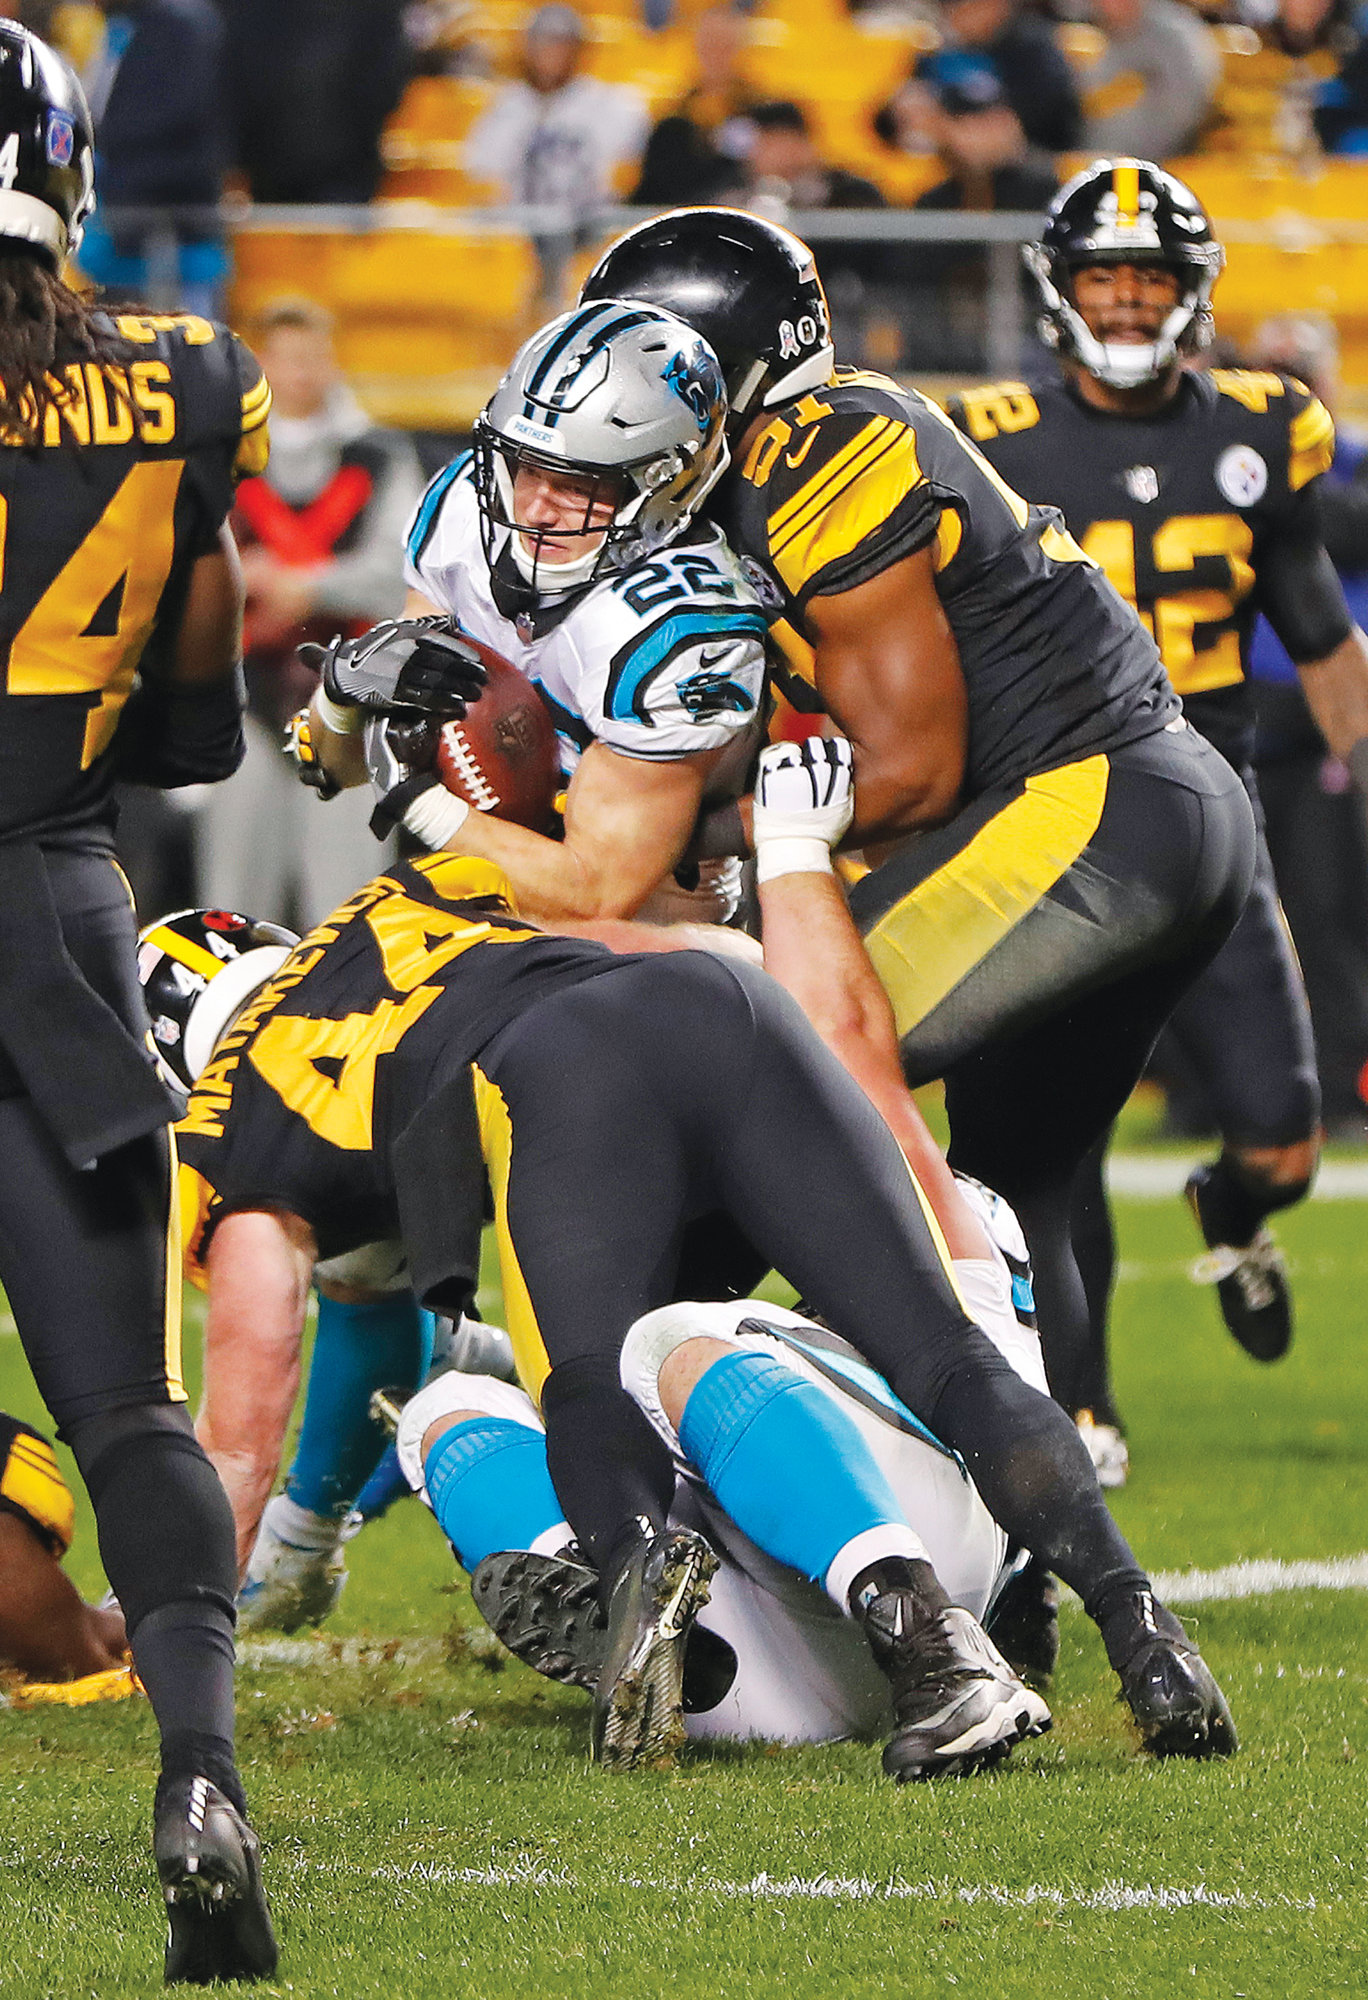 f9d82763d Rivera tells Panthers to get away from football after loss